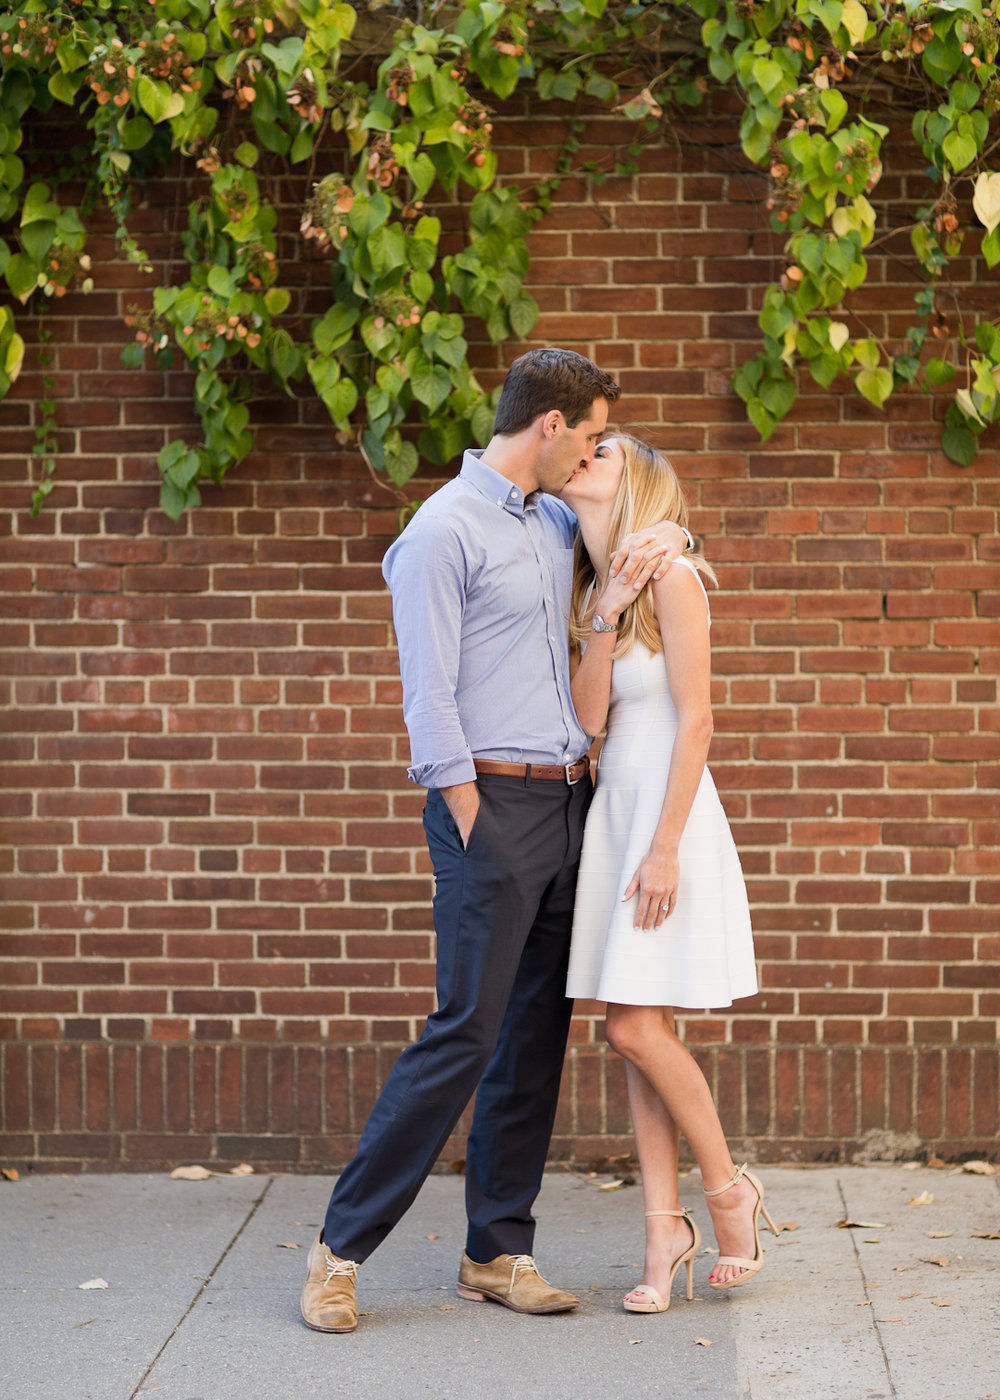 Melissa Kruse Photography - Daniece & Chris West Village Engagement Photos-71.jpg